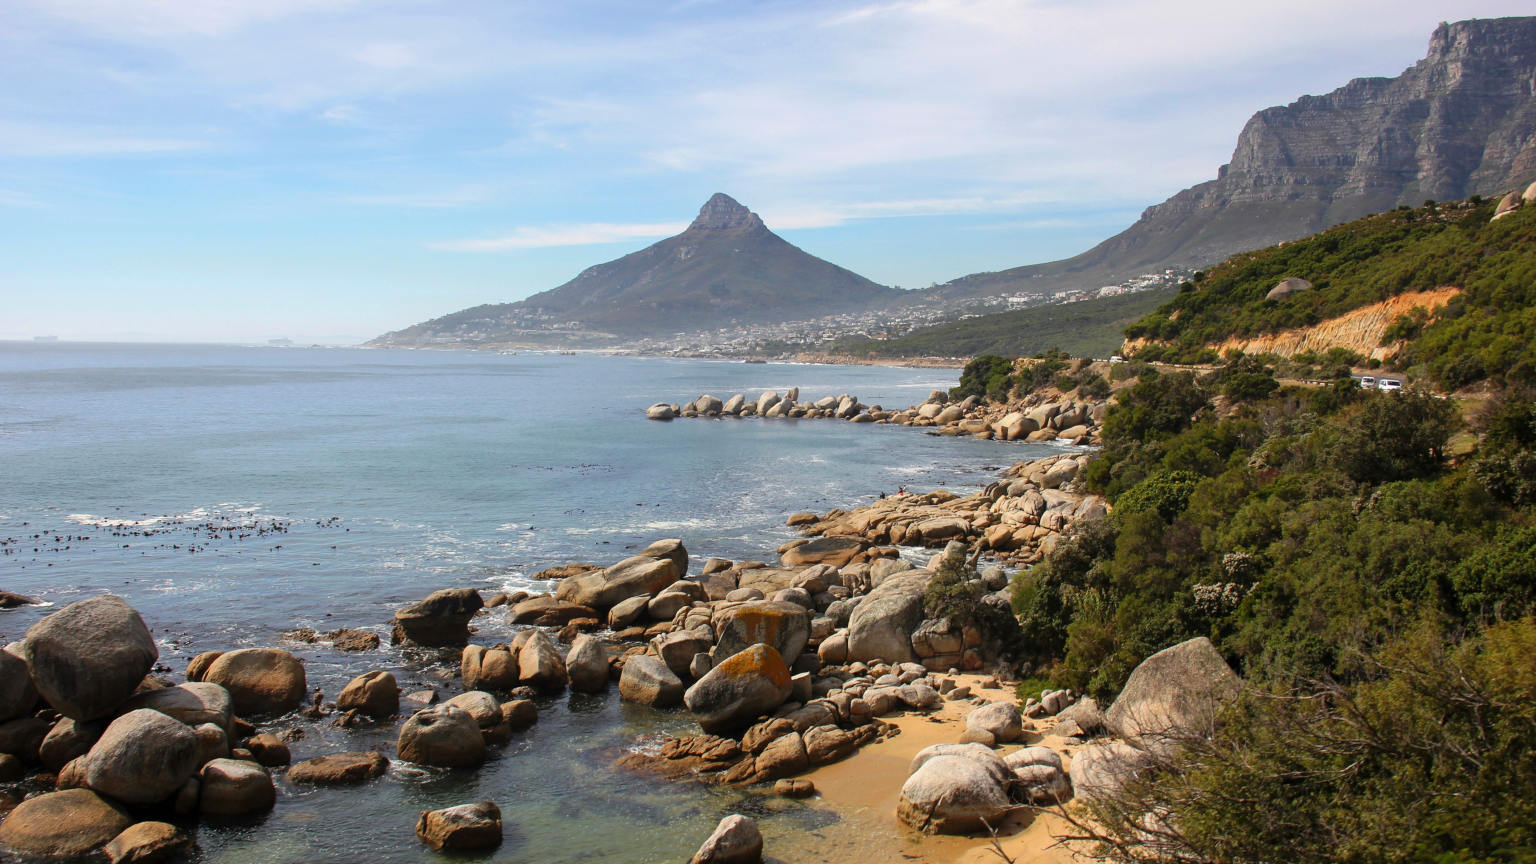 South-Africa-Cape-Town-Western-Cape-Shoreline-Mountain-Jess-Yescalis-cropped